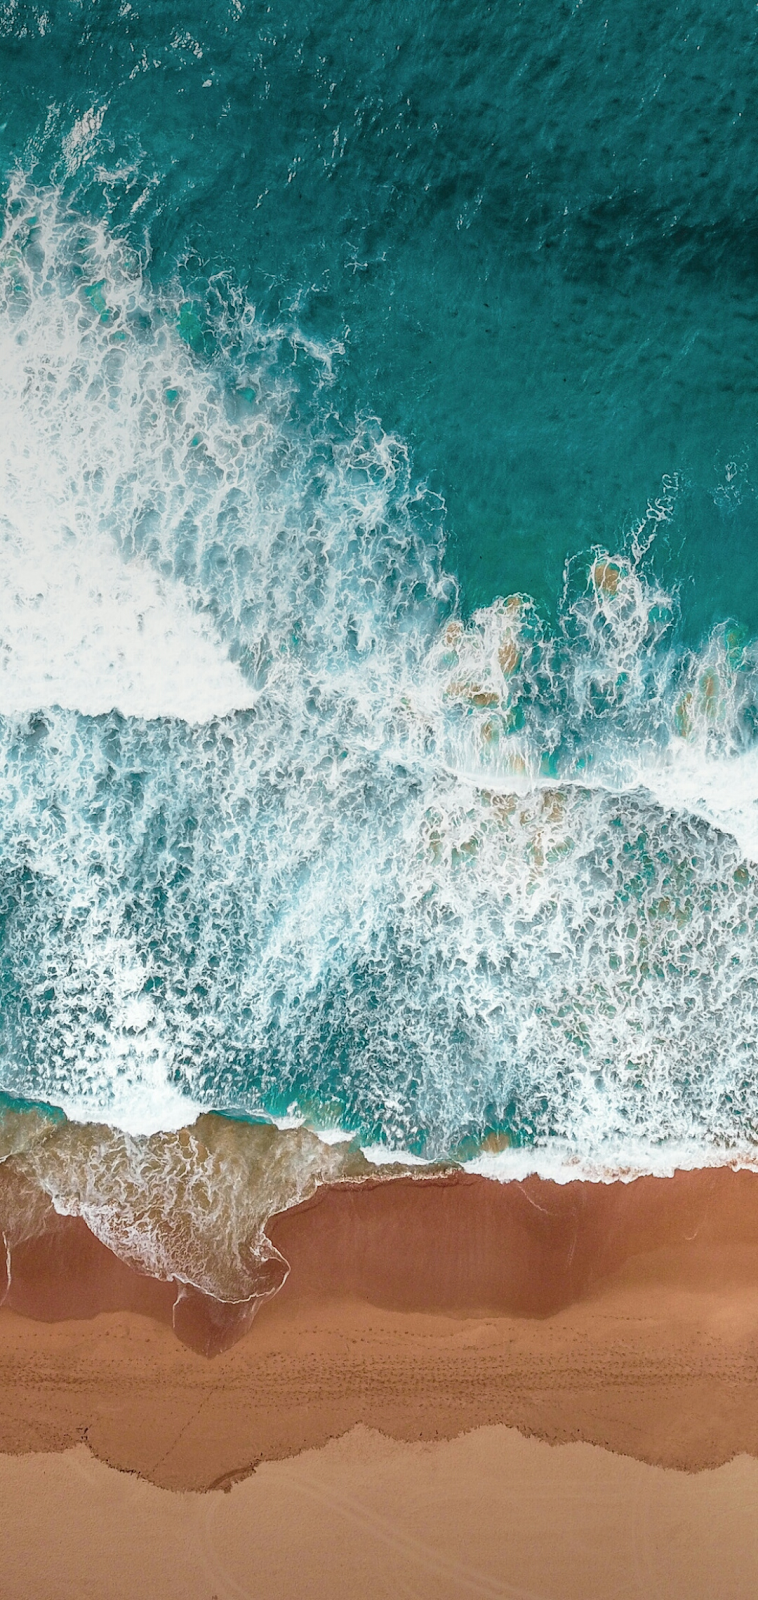 Pixel 3 Concept Wallpaper Beautiful Wallpaper Beach